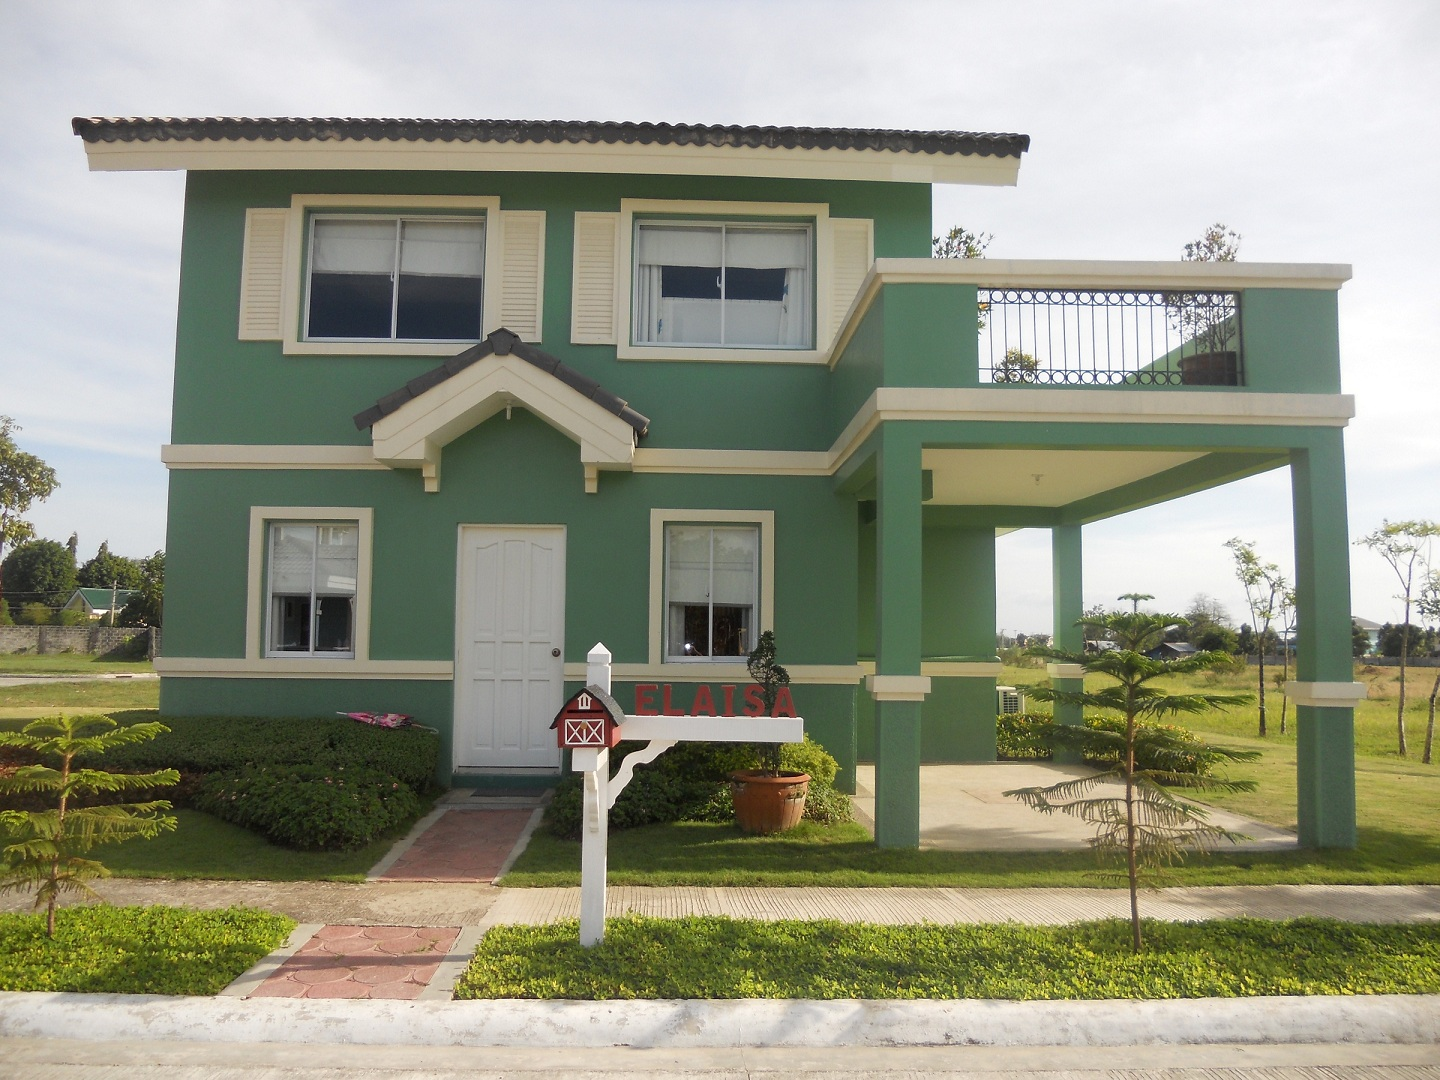 Elaisa Or Sapphire Model House Of Camella Home Series Iloilo By Camella Homes Erecre Group Realty Design And Construction